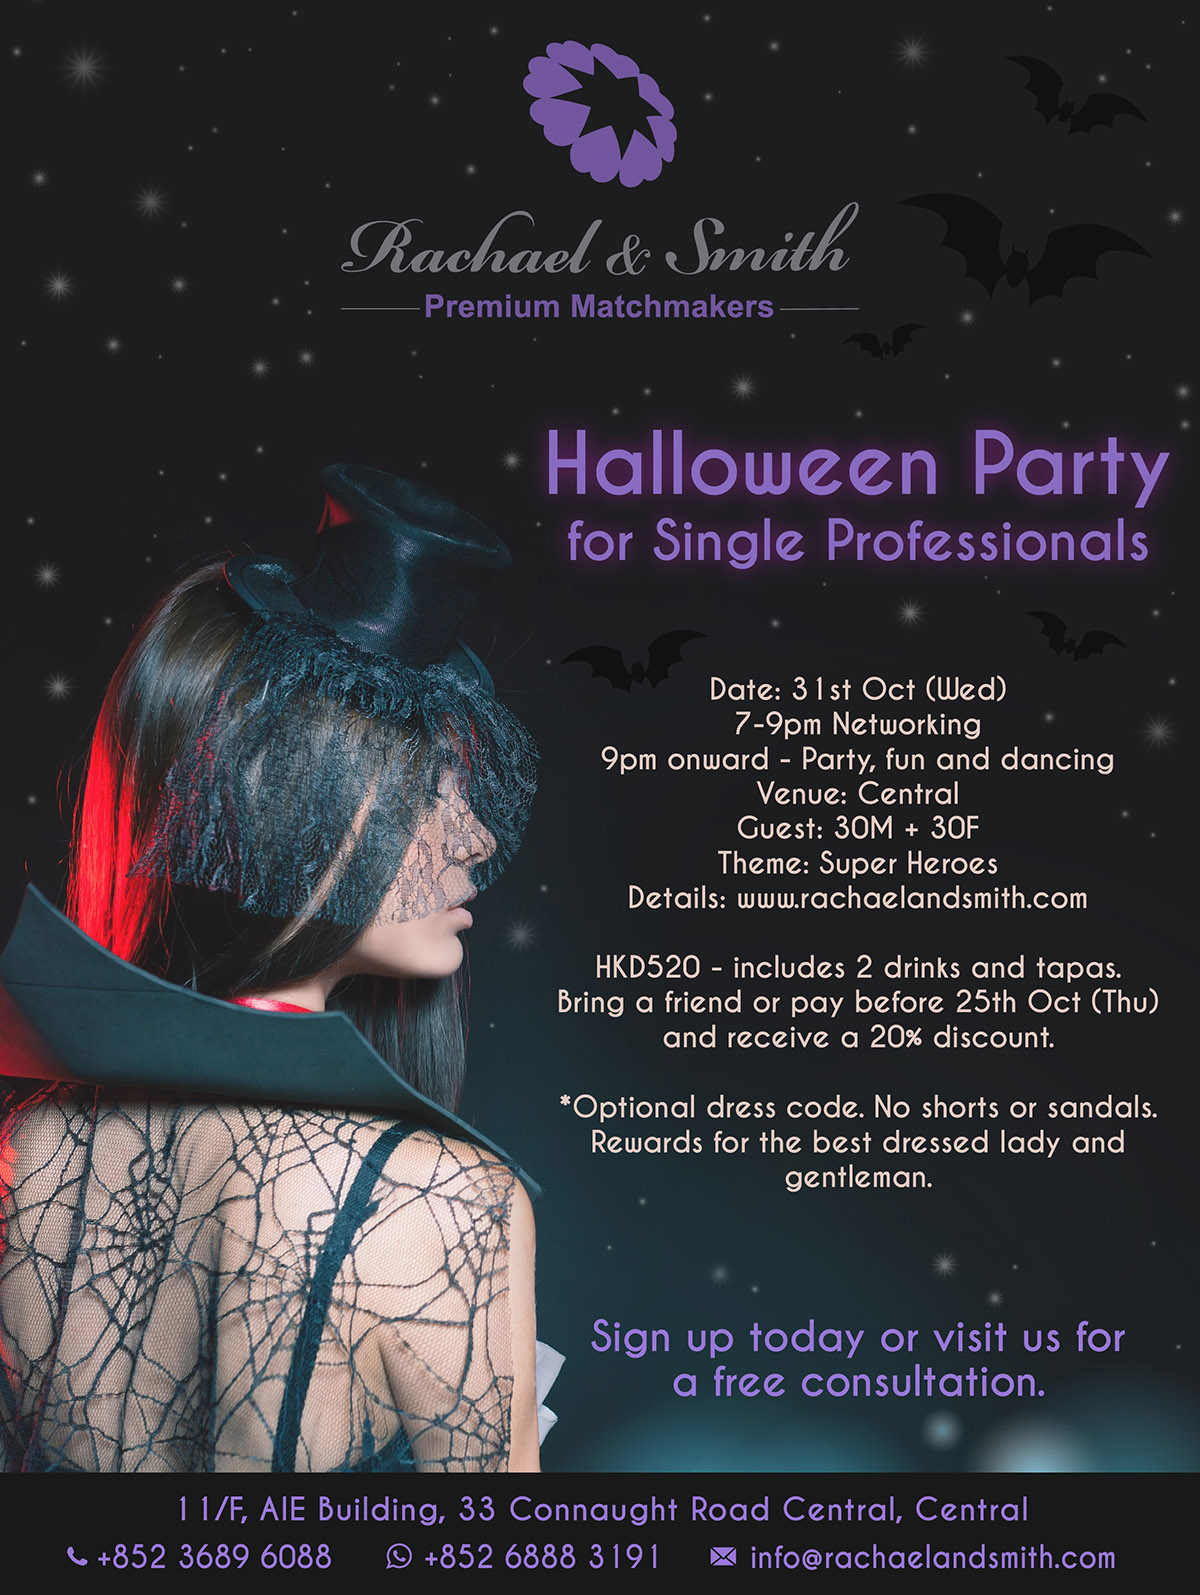 Rachael & Smith, Premium Matchmakers, Networking, Party, Halloween